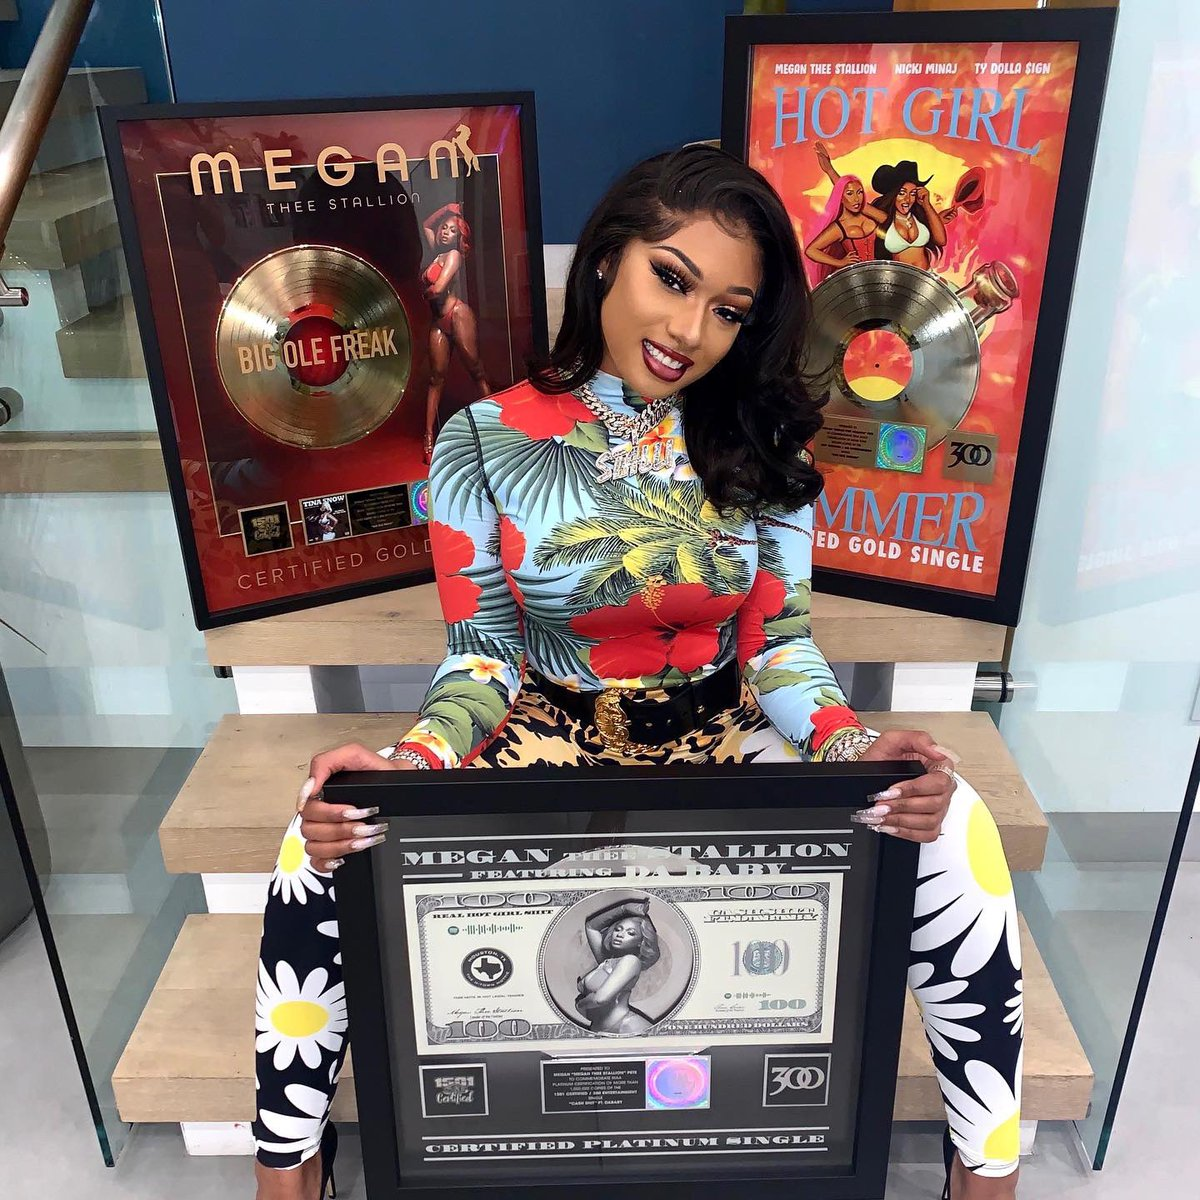 @theestallion's photo on Fletcher